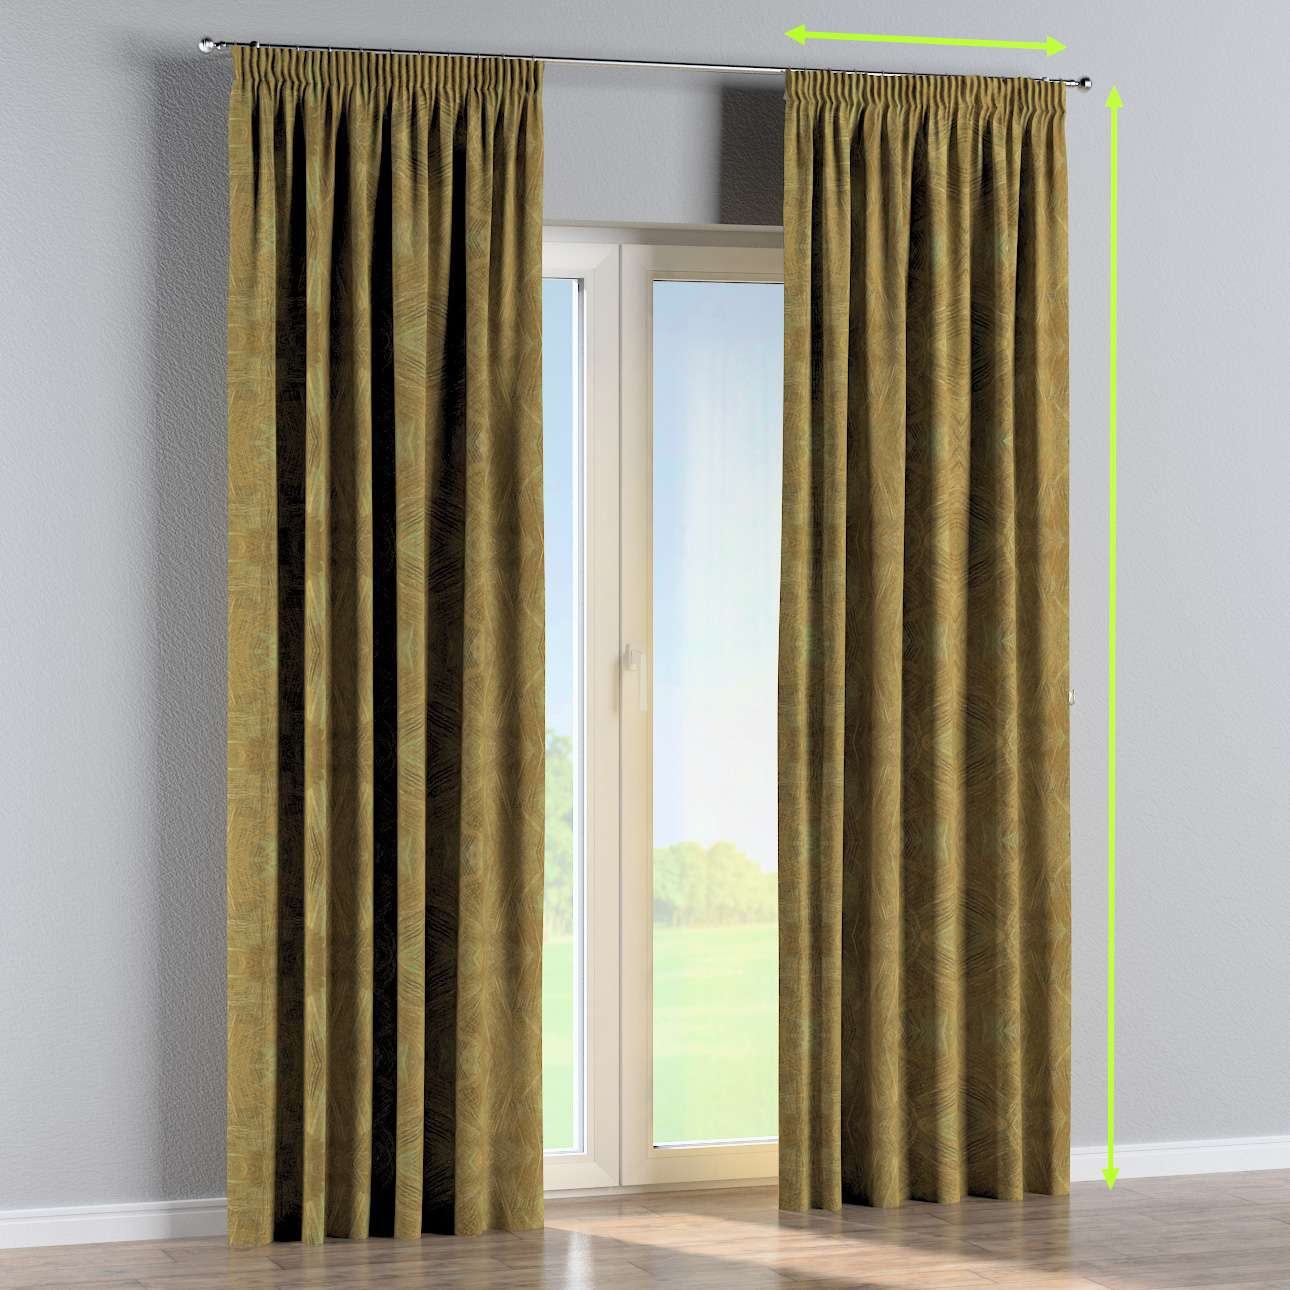 Pencil pleat curtain in collection Tropical Island, fabric: 142-59